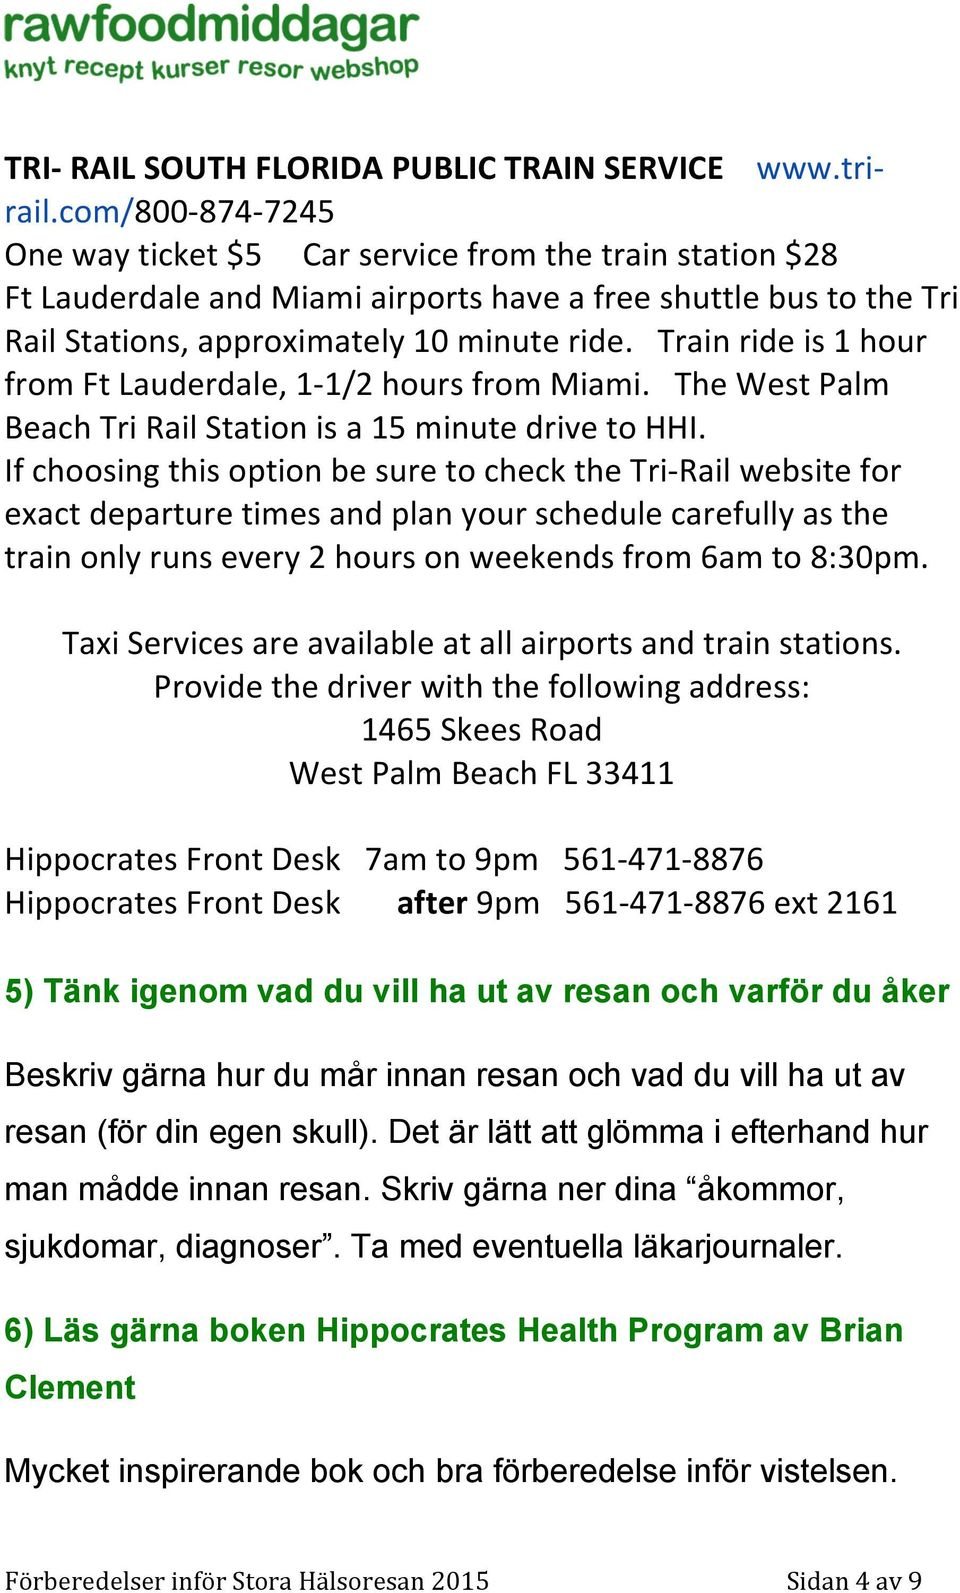 Train ride is 1 hour from Ft Lauderdale, 1-1/2 hours from Miami. The West Palm Beach Tri Rail Station is a 15 minute drive to HHI.